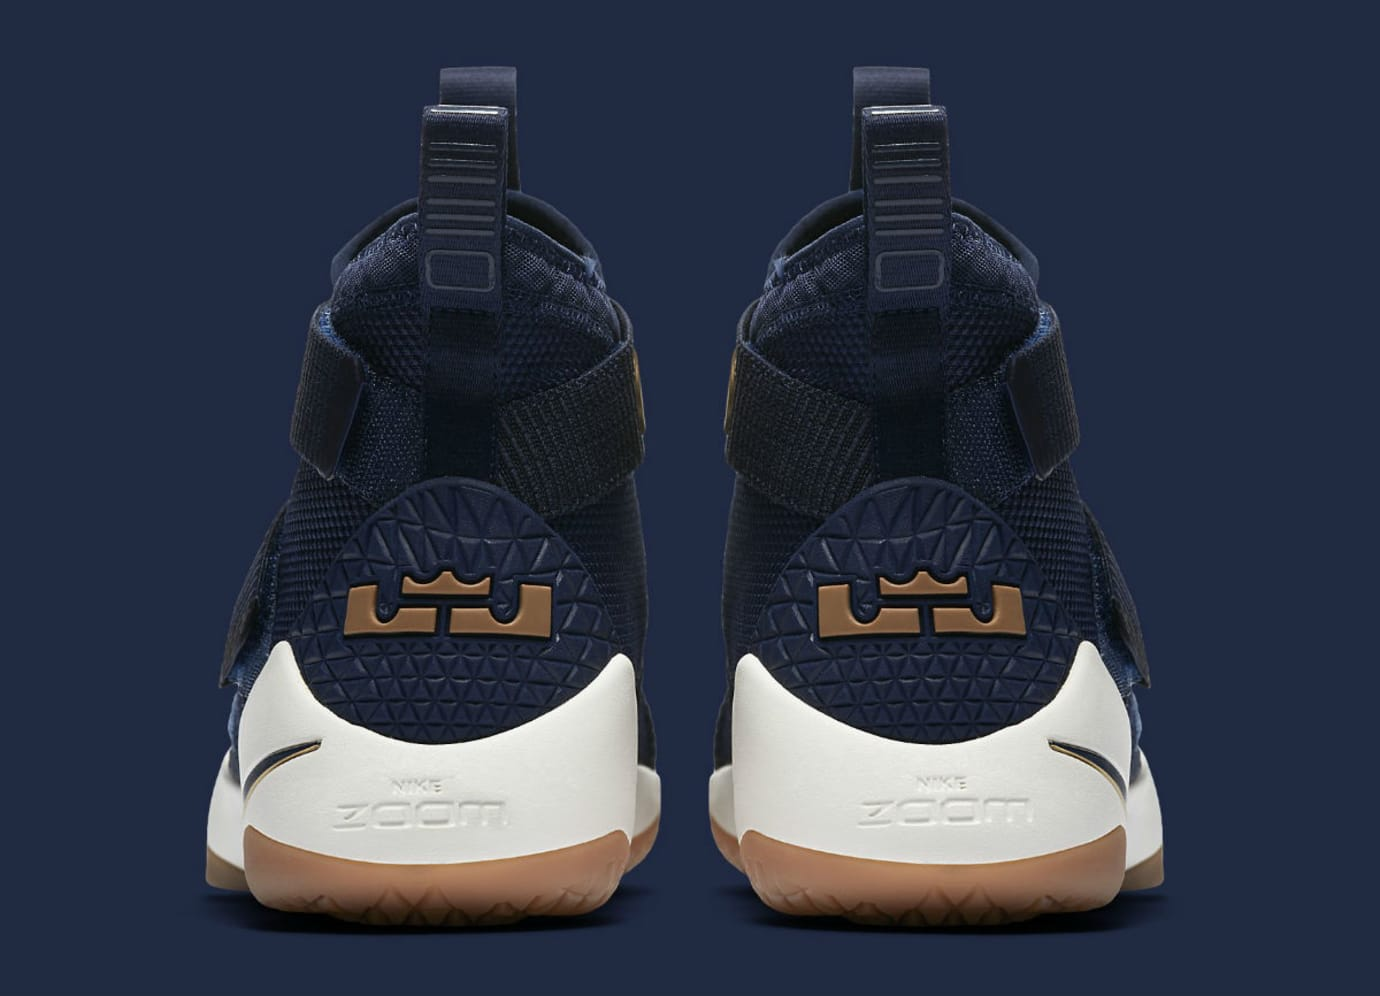 969e93dc211 Nike LeBron Soldier 11 Cavs Navy Release Date Heel 897644-402